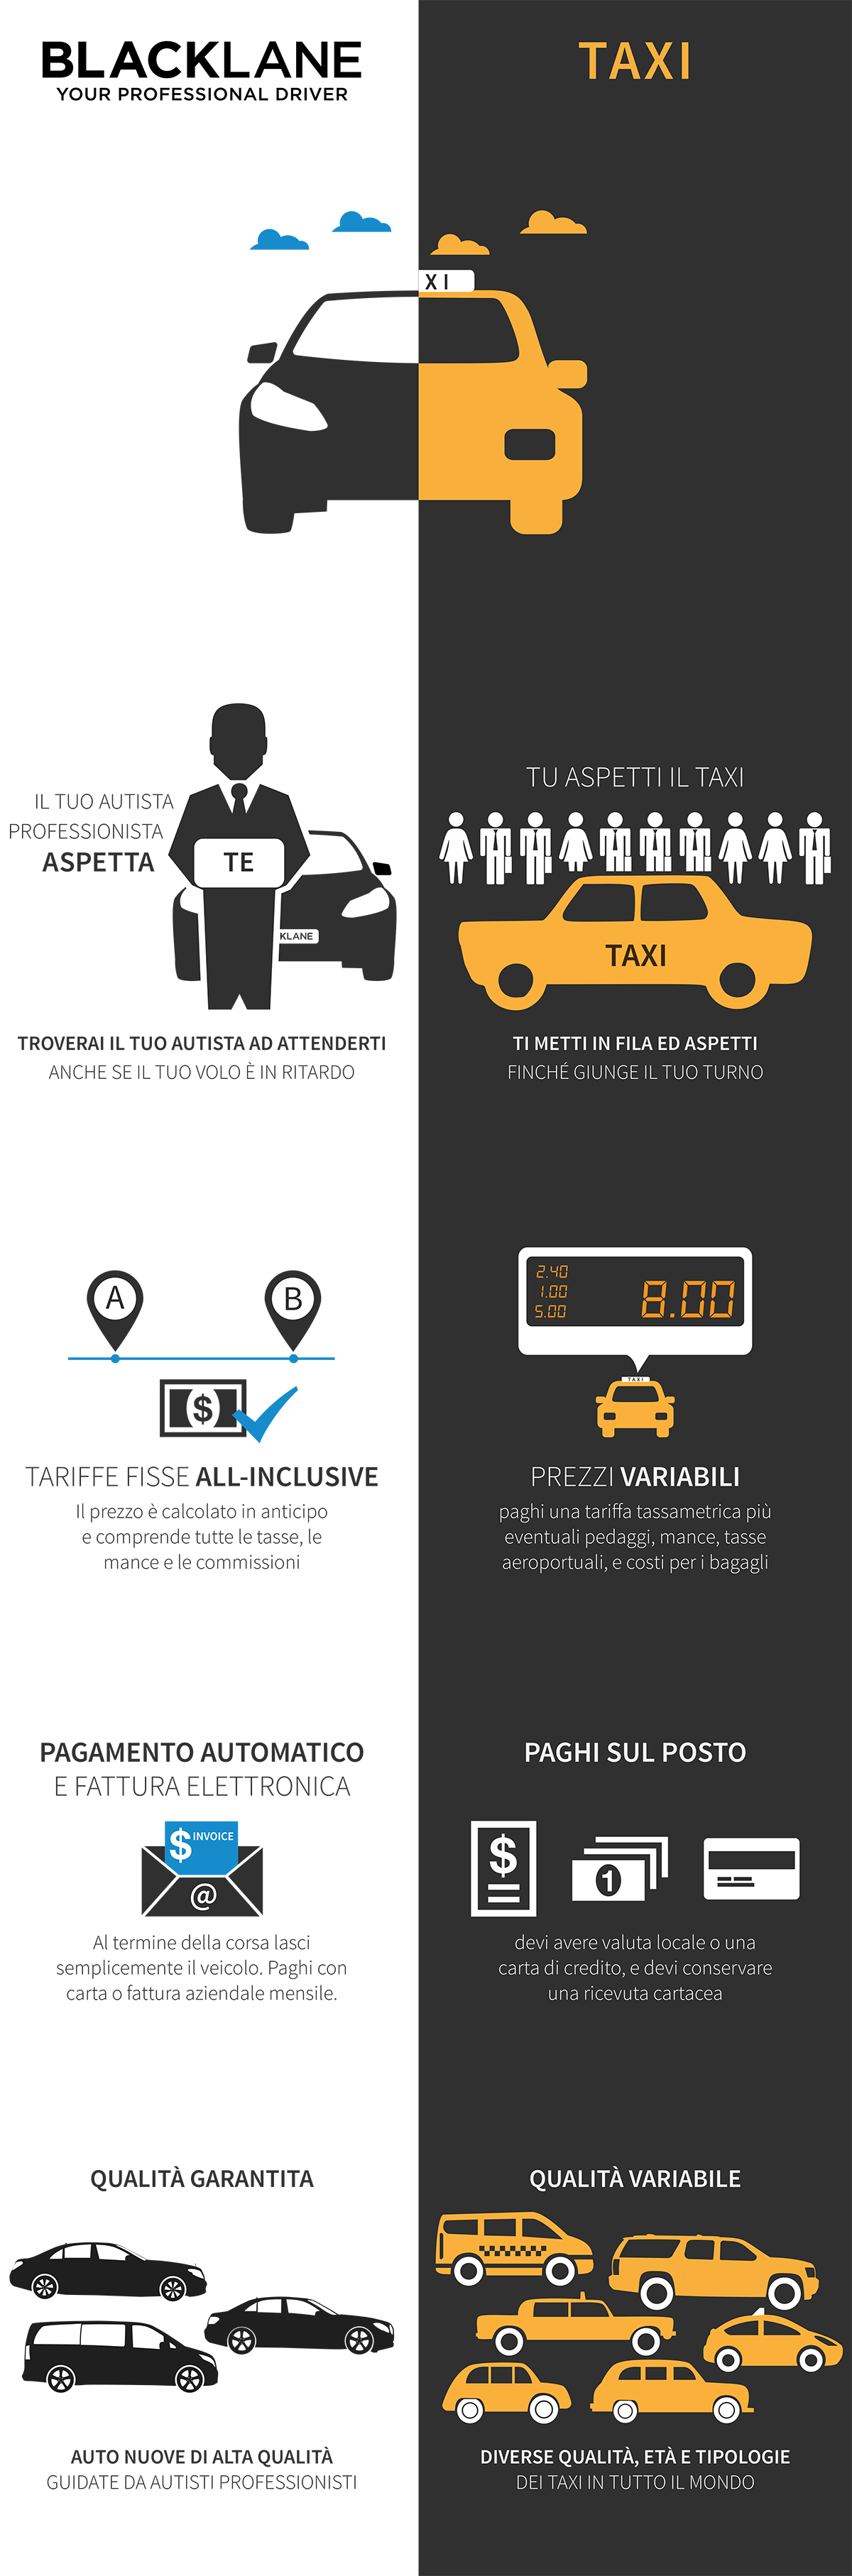 Infographic_BL_TAXI_NEW